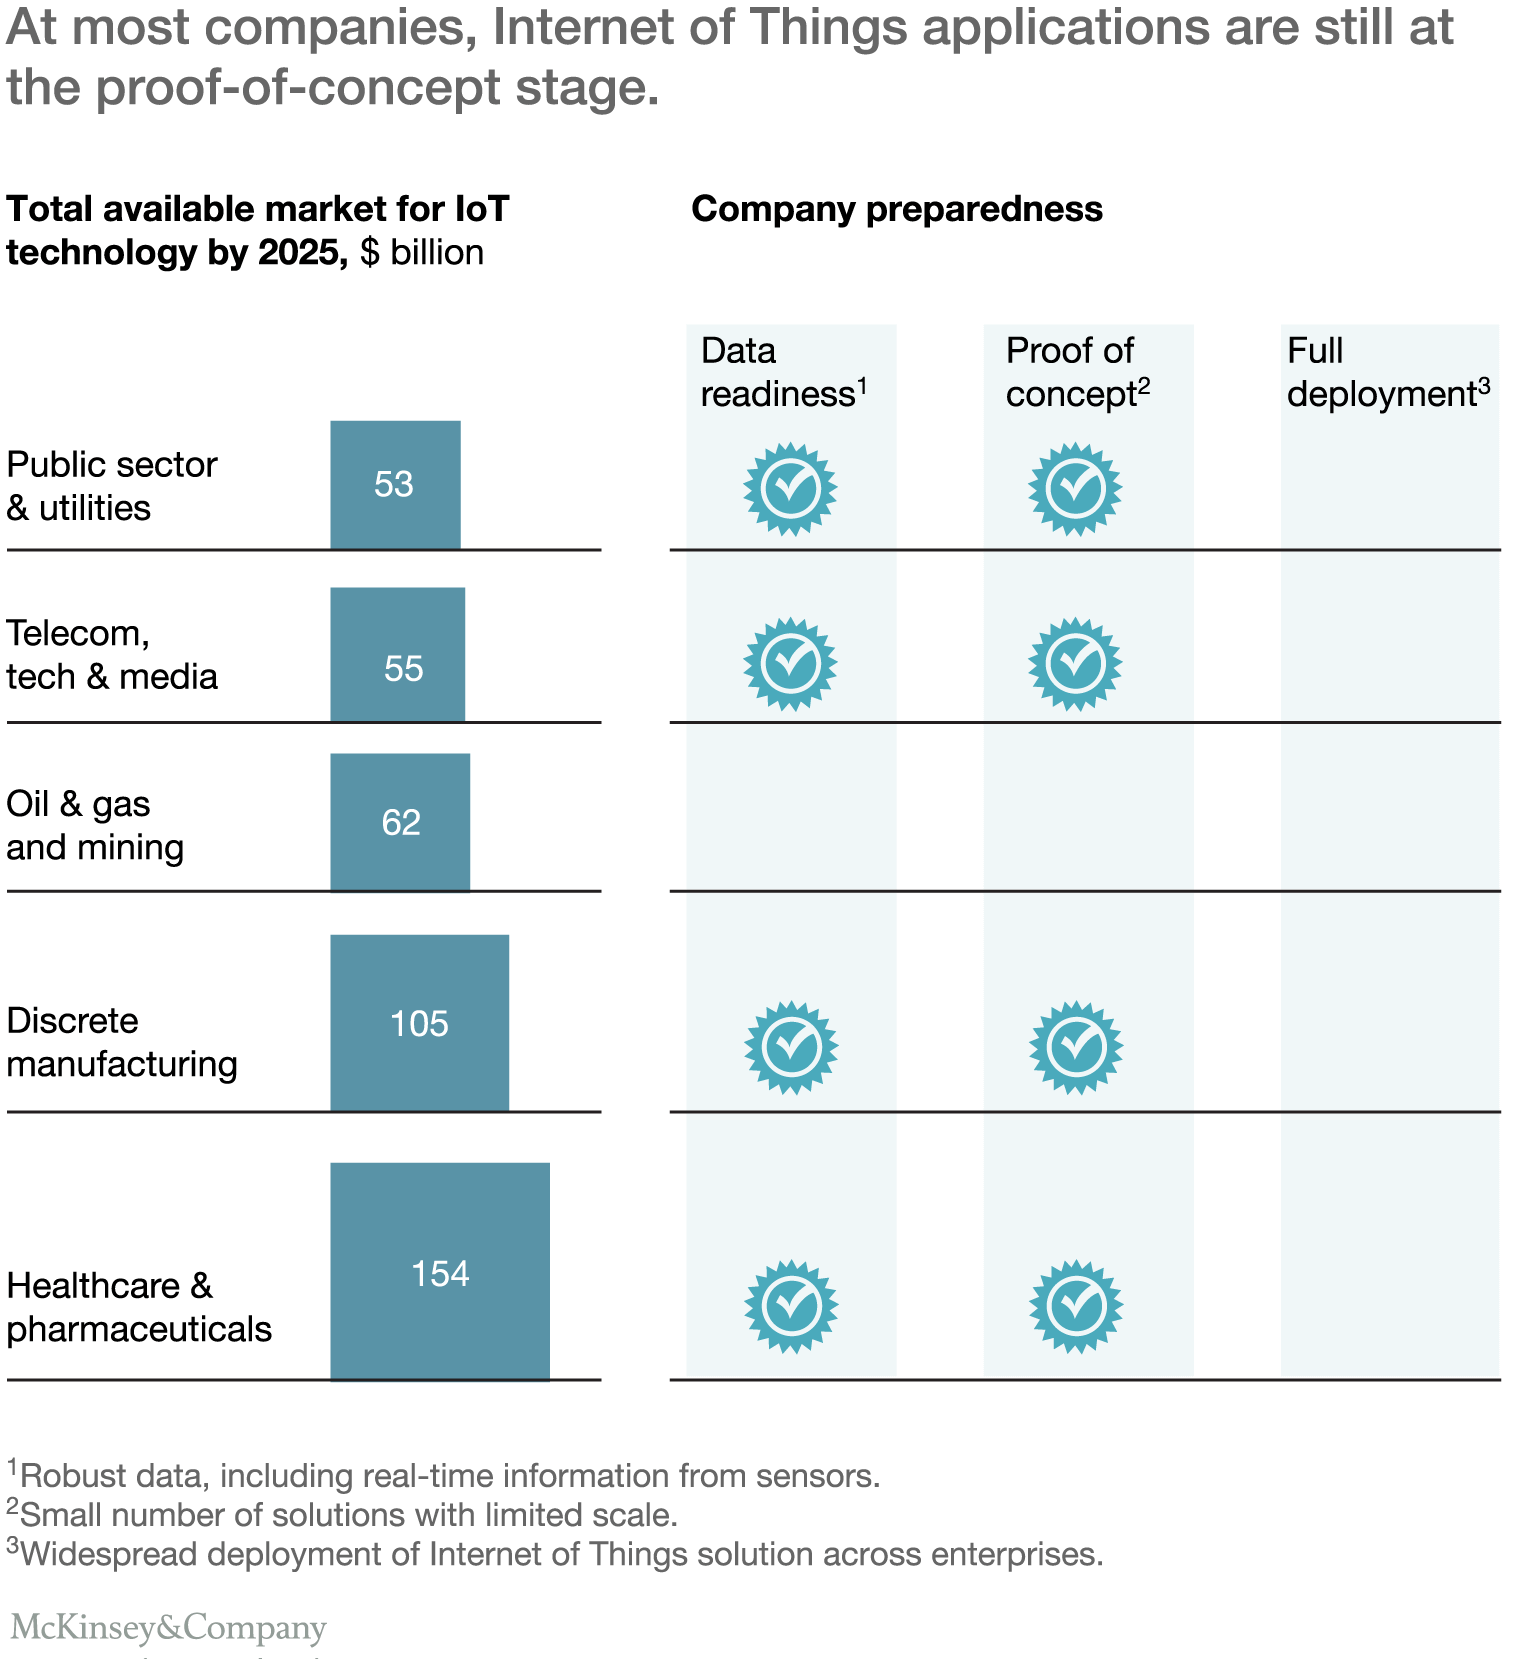 At most companies, Internet of Things applications are still at the proof-of-concept stage.